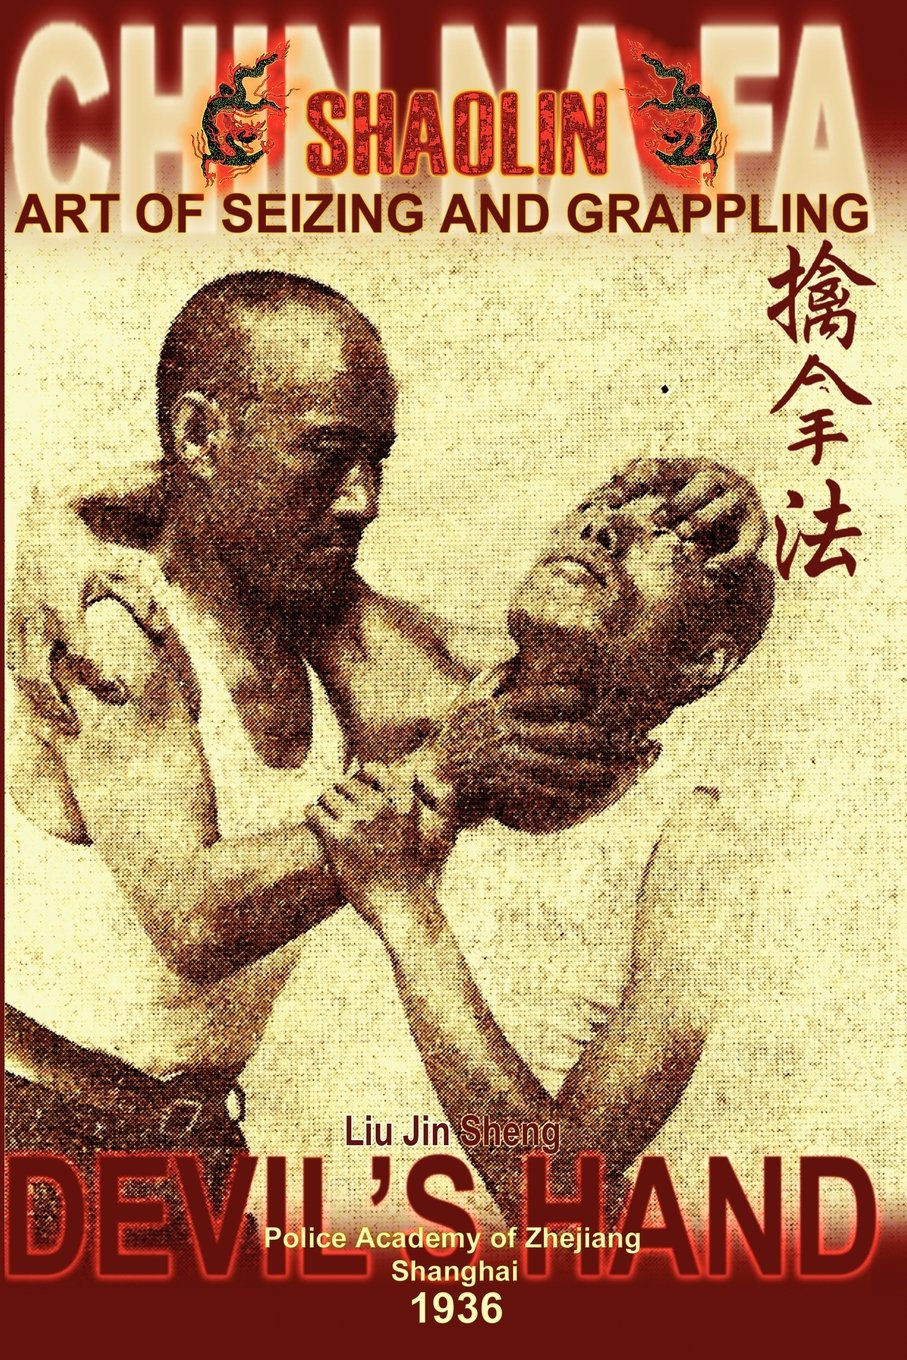 shaolin-chin-na-fa-art-of-seizing-and-grappling-instructor-s-manual-for-police-academy-of-zhejiang-province-shanghai-1936